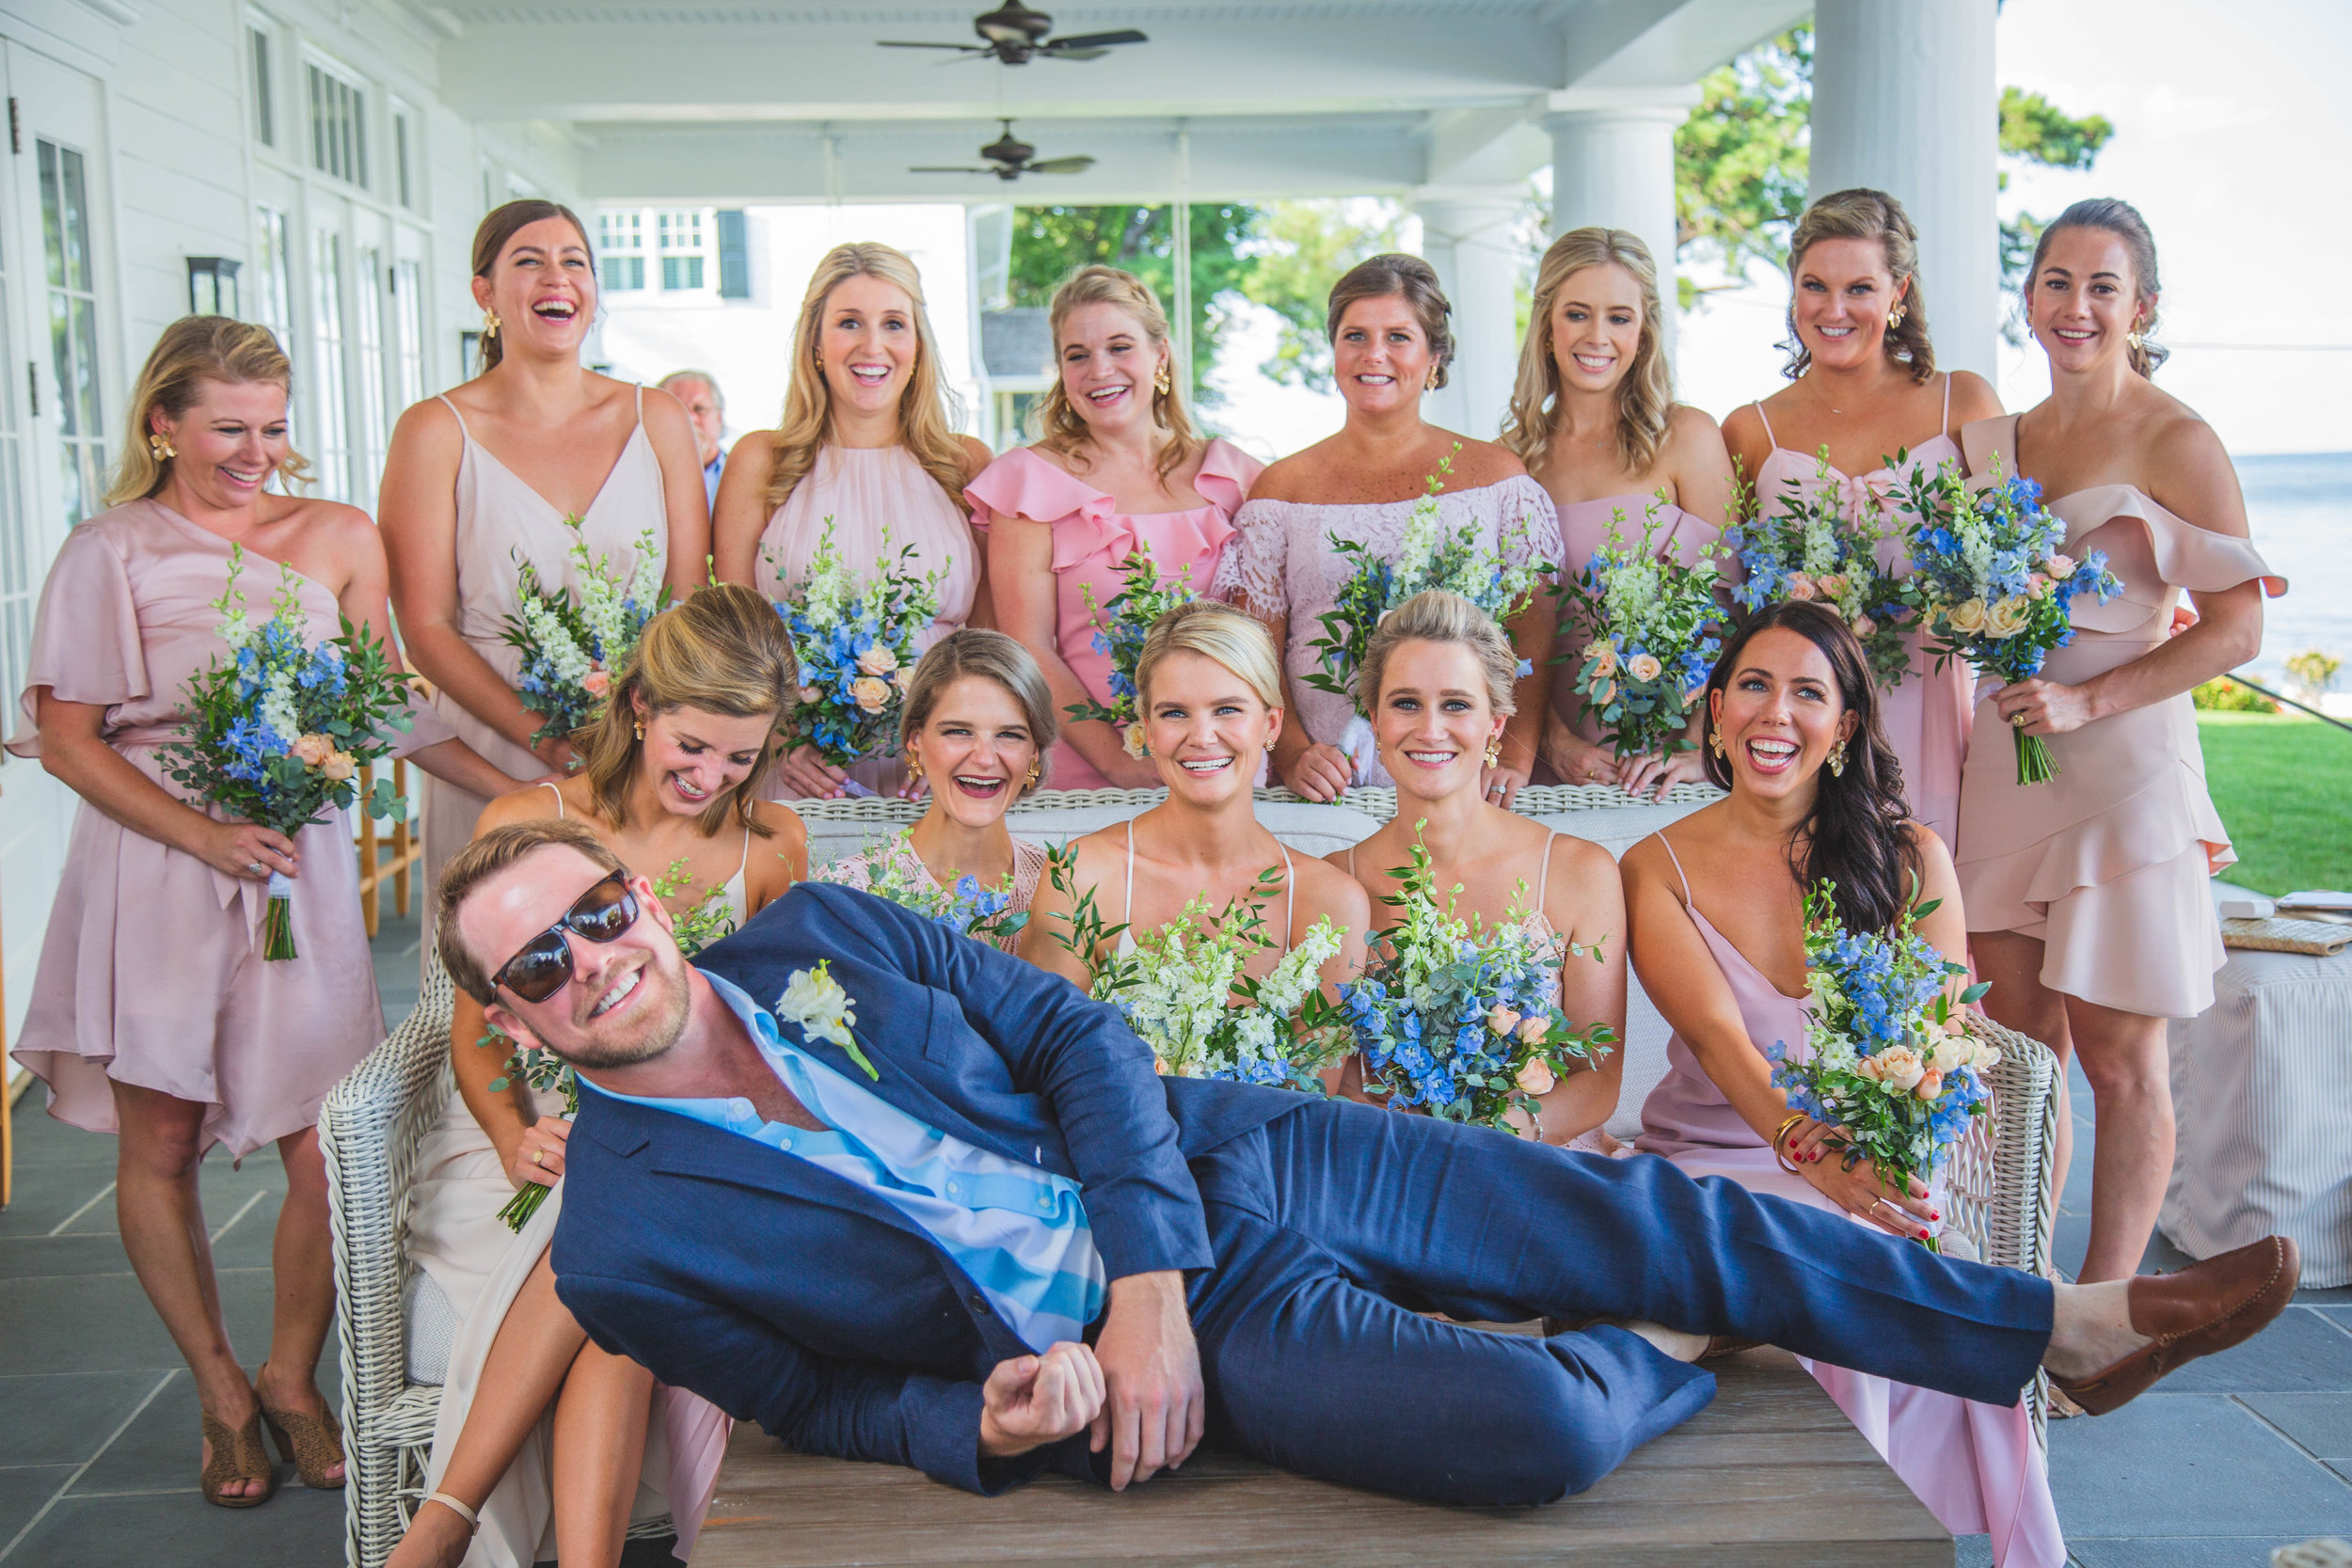 Bride and bridesmaids pose with groom